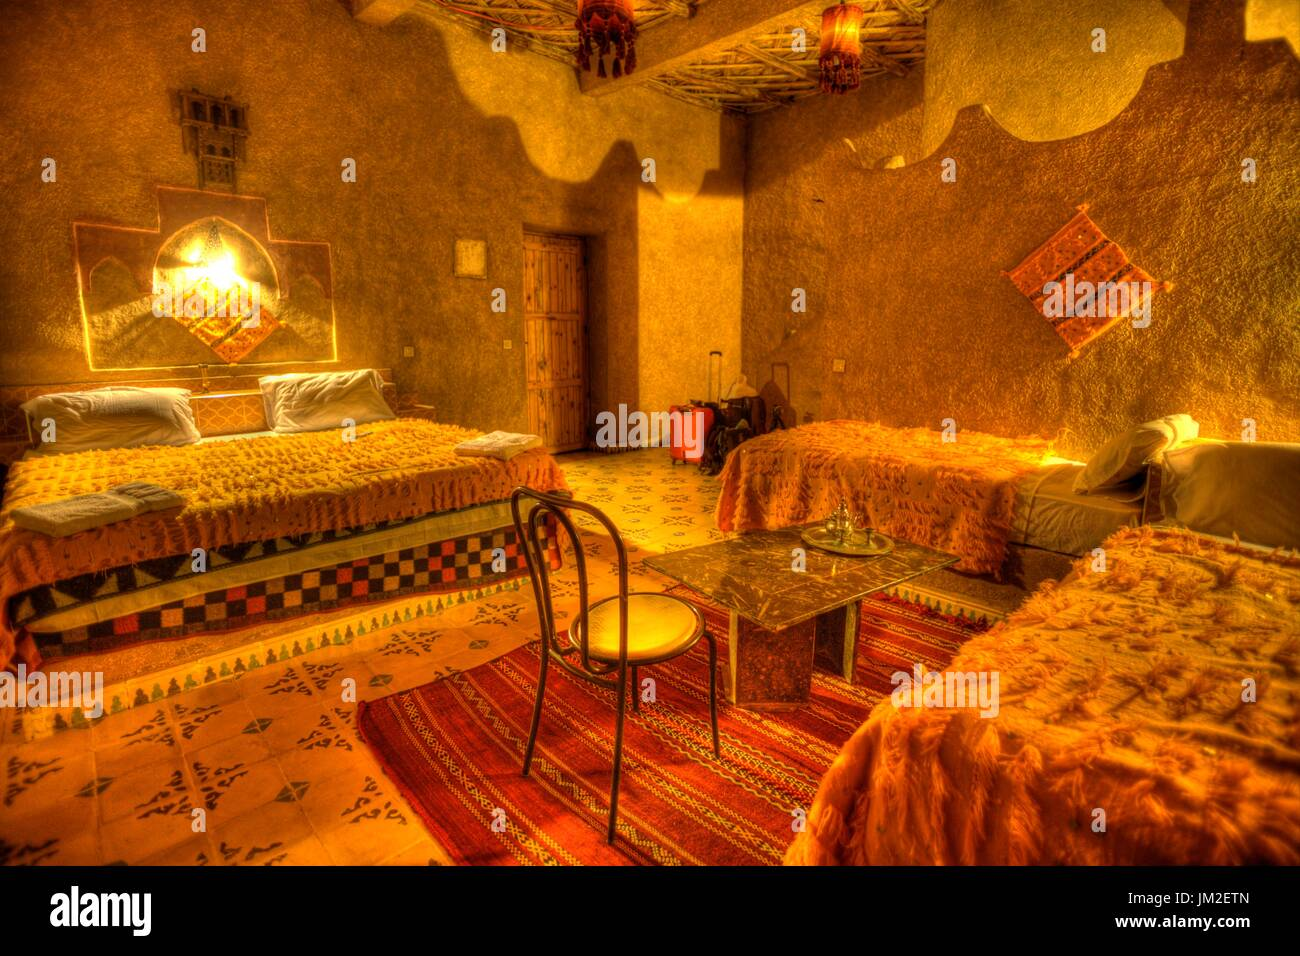 Hotel at the Sahara desert, Morocco - Stock Image